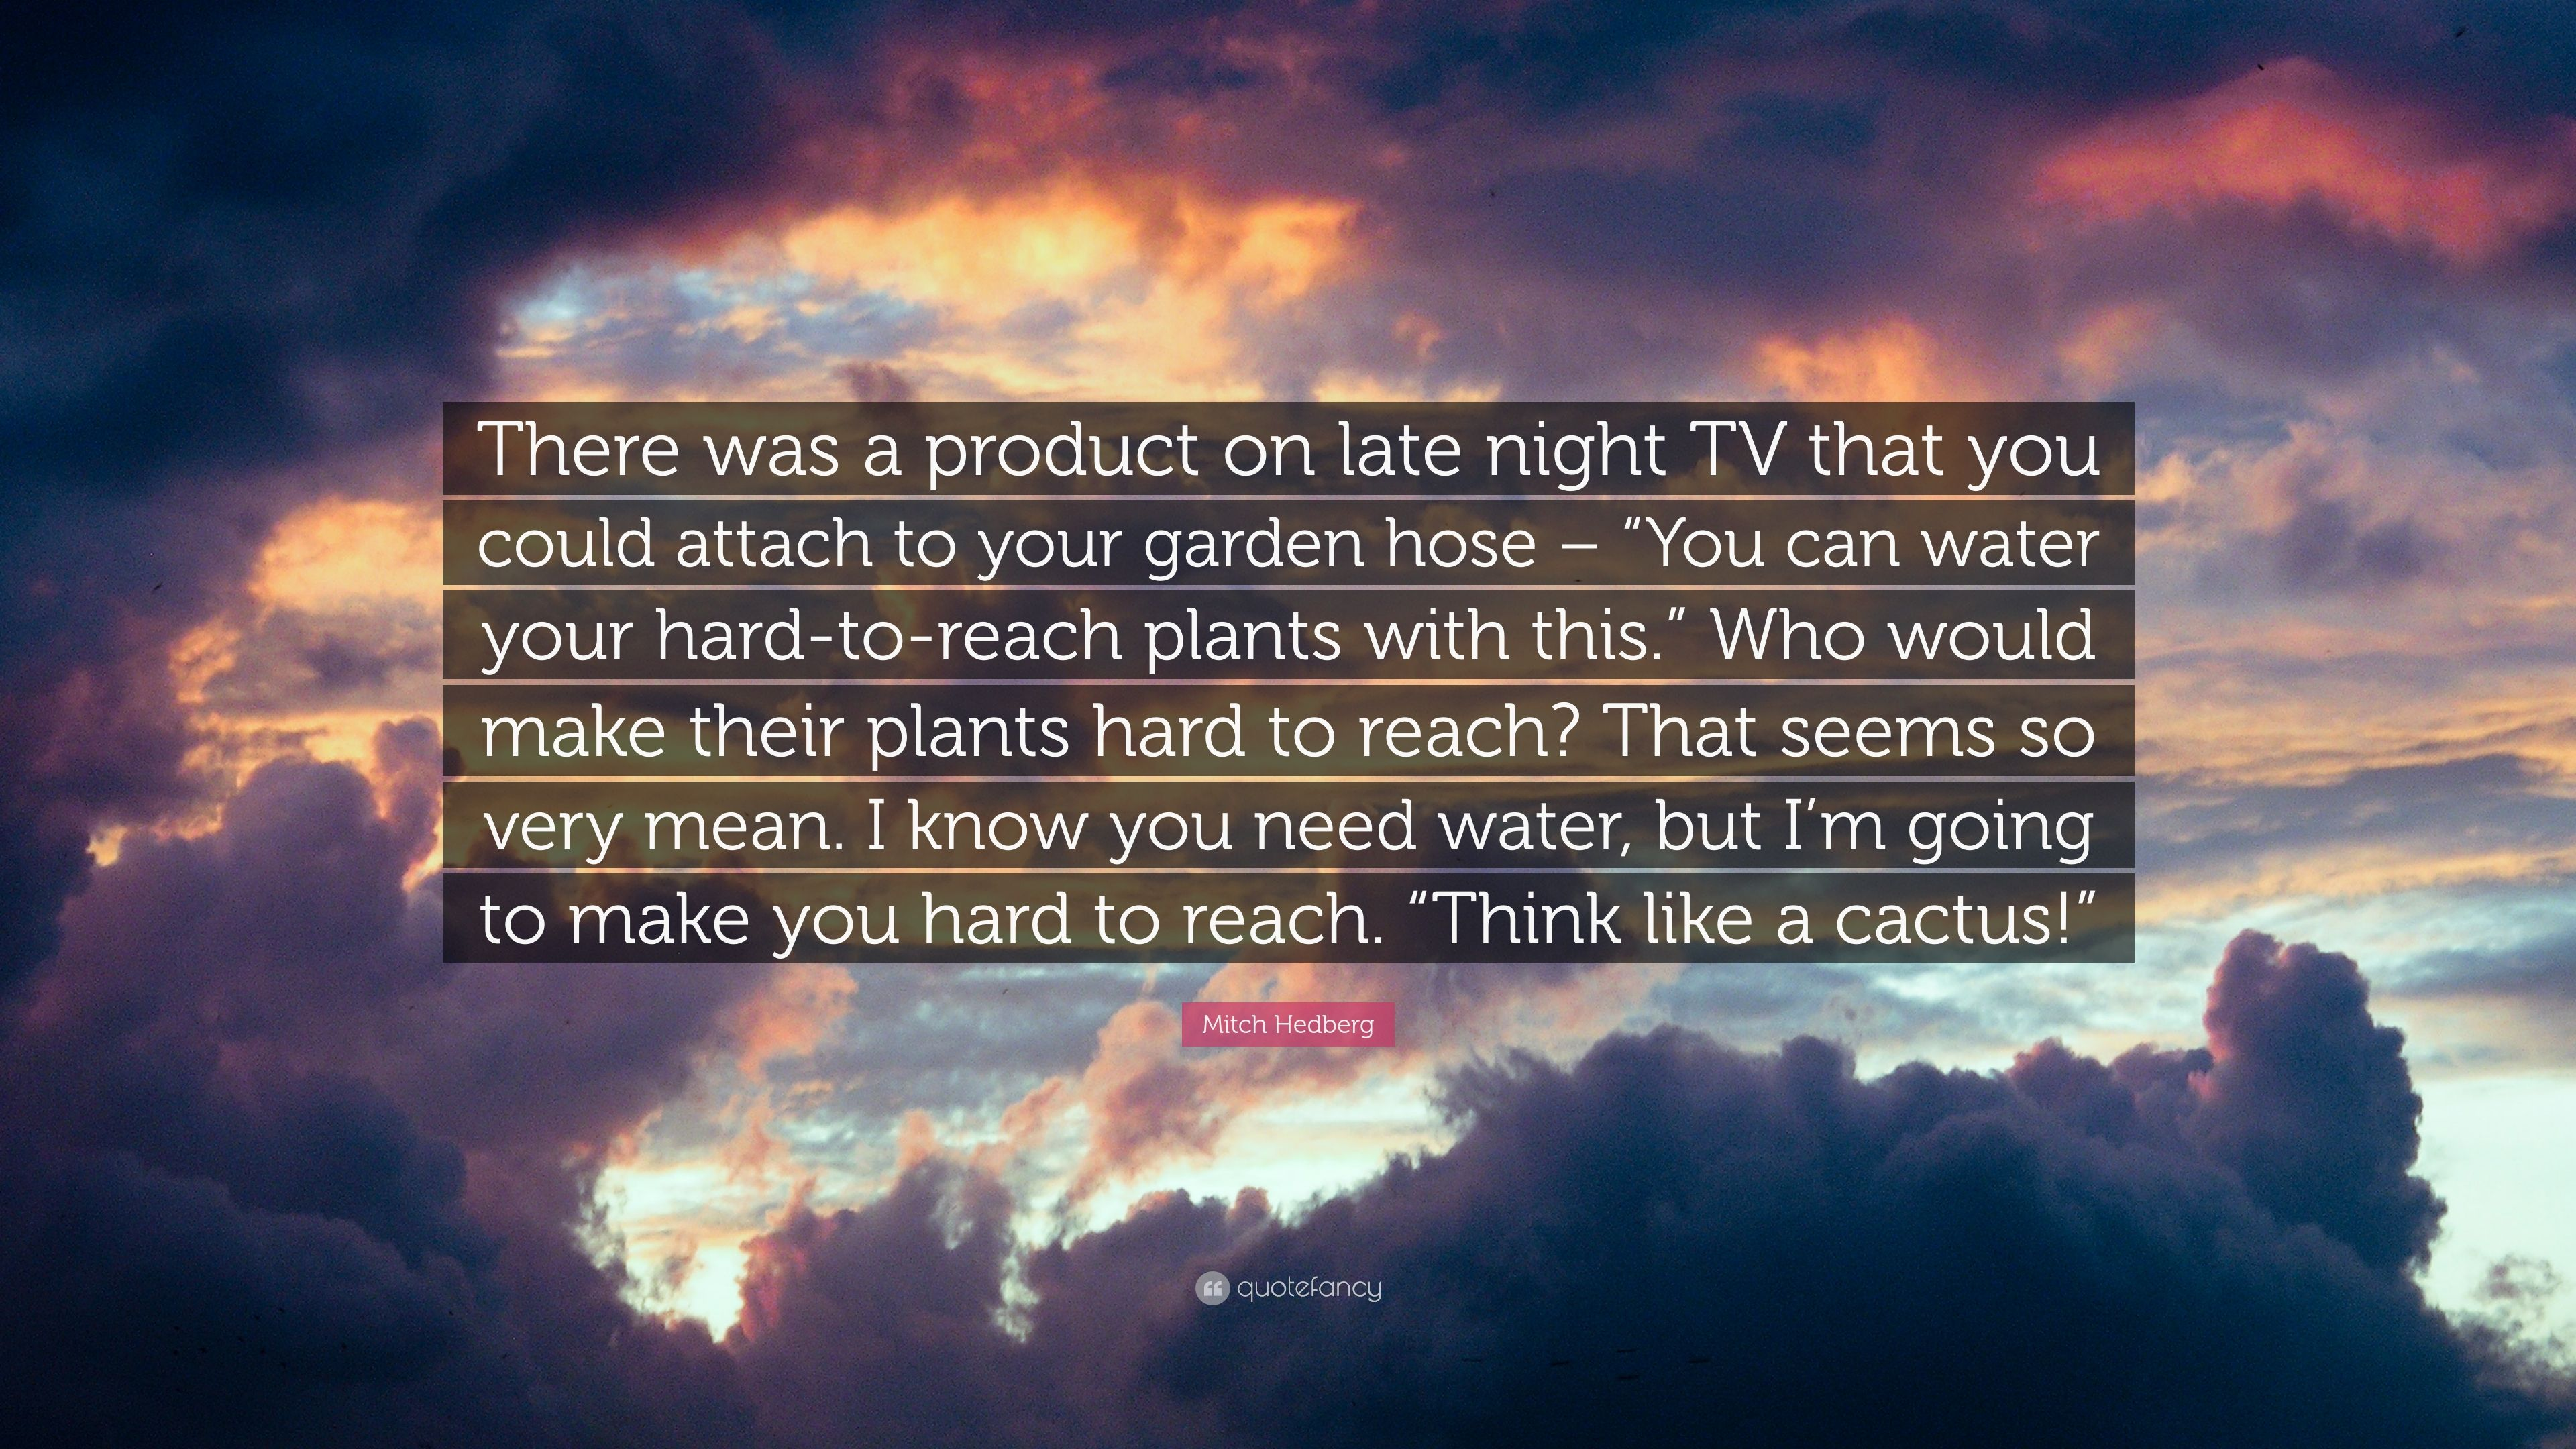 mitch hedberg quote u201cthere was a product on late night tv that